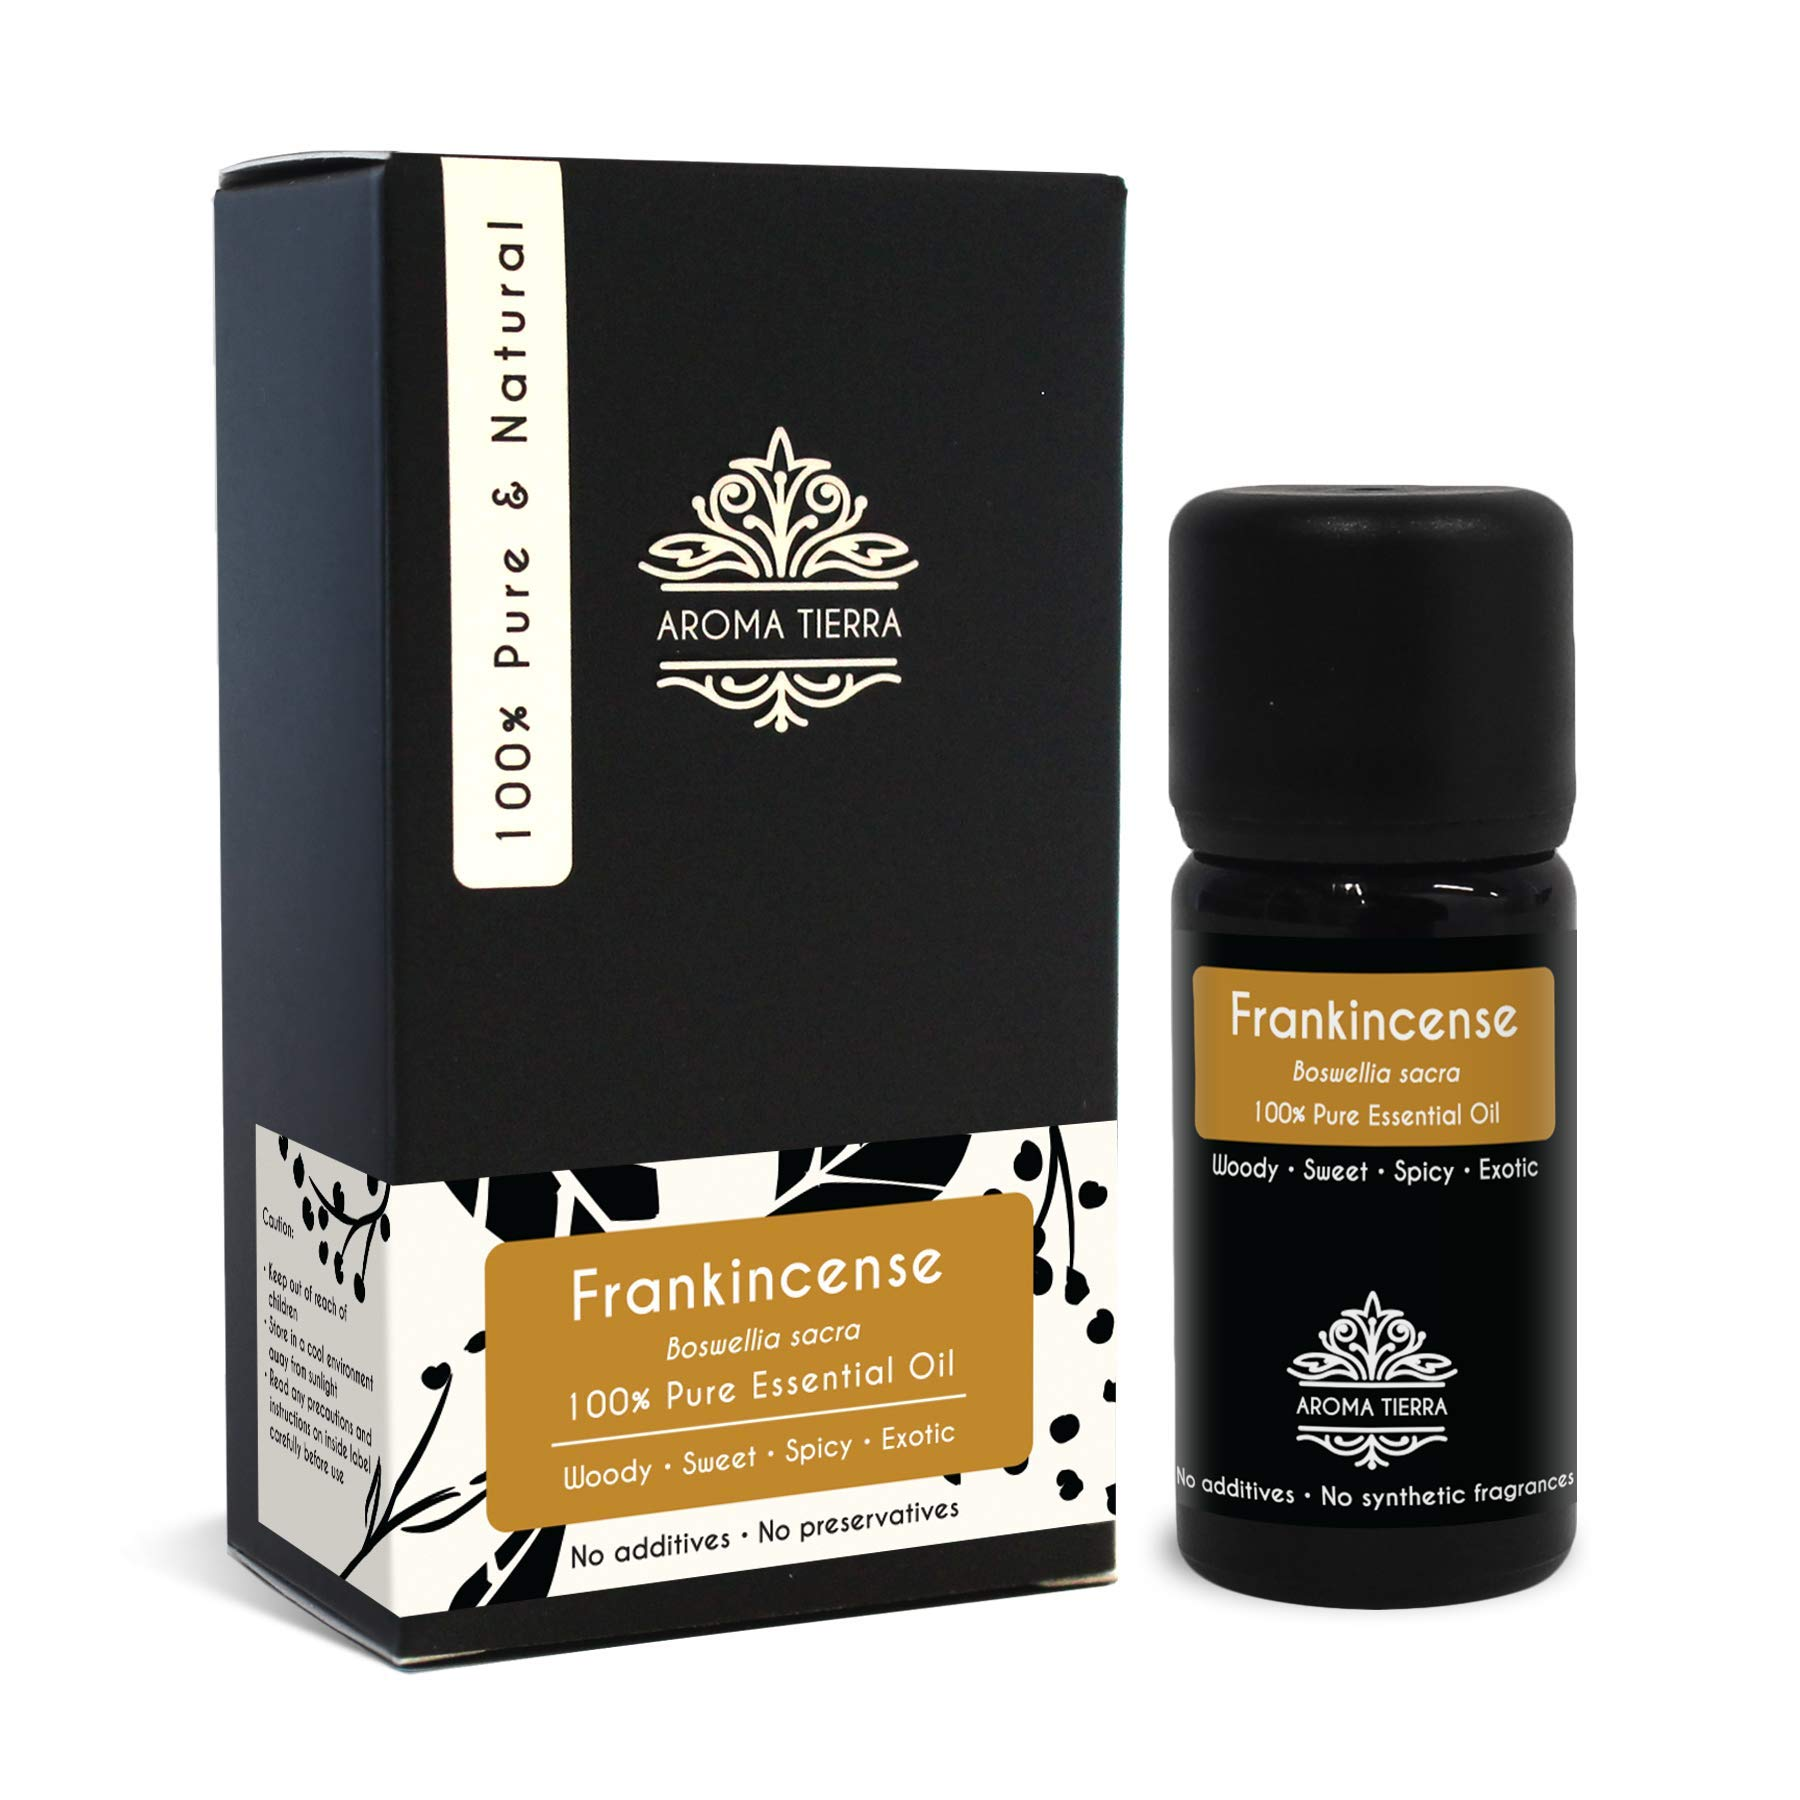 Aroma Tierra Sacred Frankincense Essential Oil (Boswellia sacra) - From Oman - 100% Pure, Natural, Undiluted (10ml)